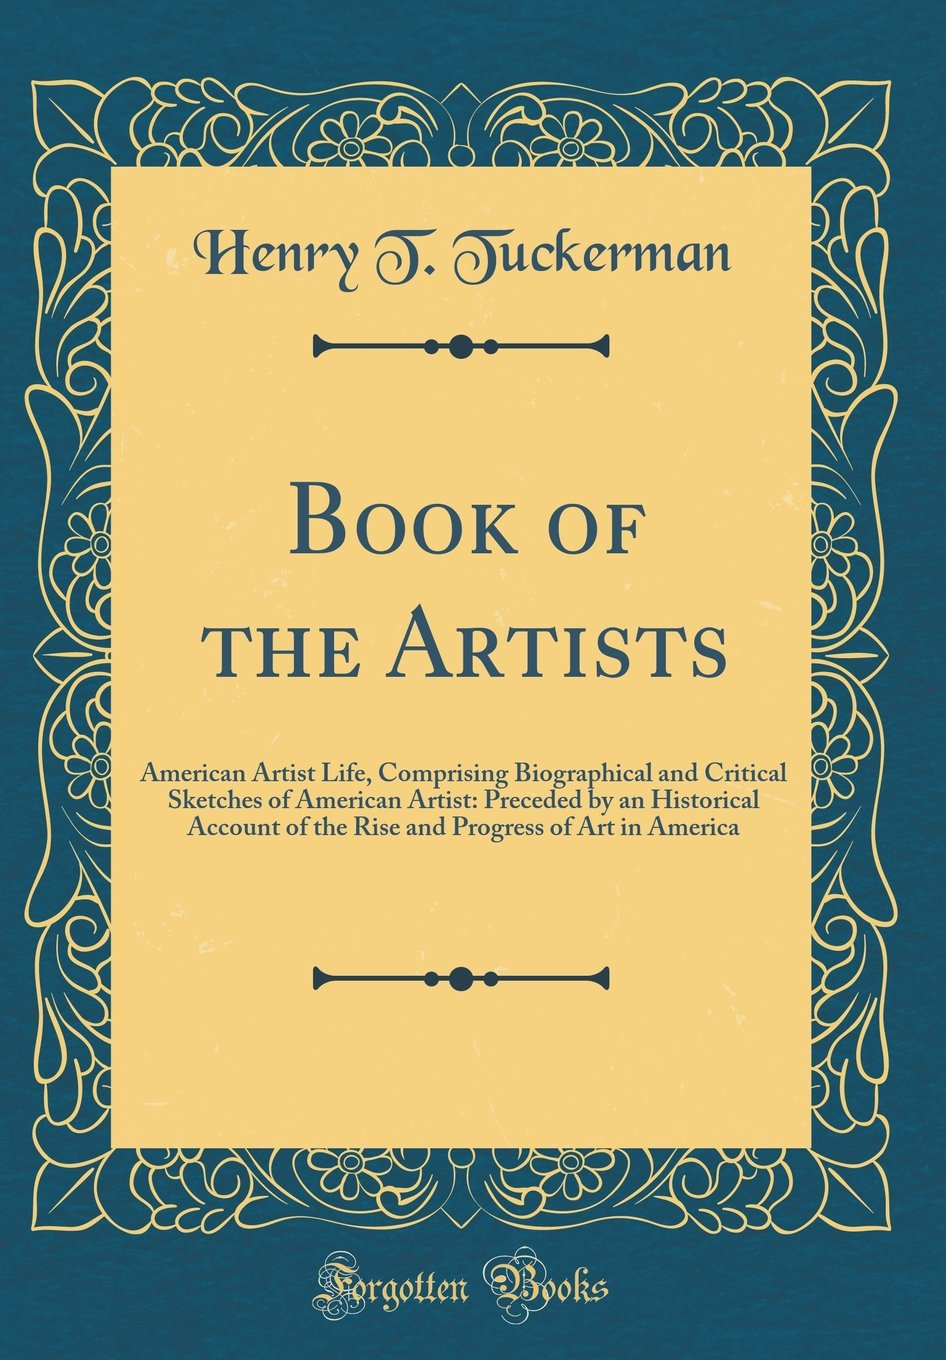 Book of the Artists: American Artist Life, Comprising Biographical and Critical Sketches of American Artist: Preceded by an Historical Account of the ... Progress of Art in America (Classic Reprint) pdf epub